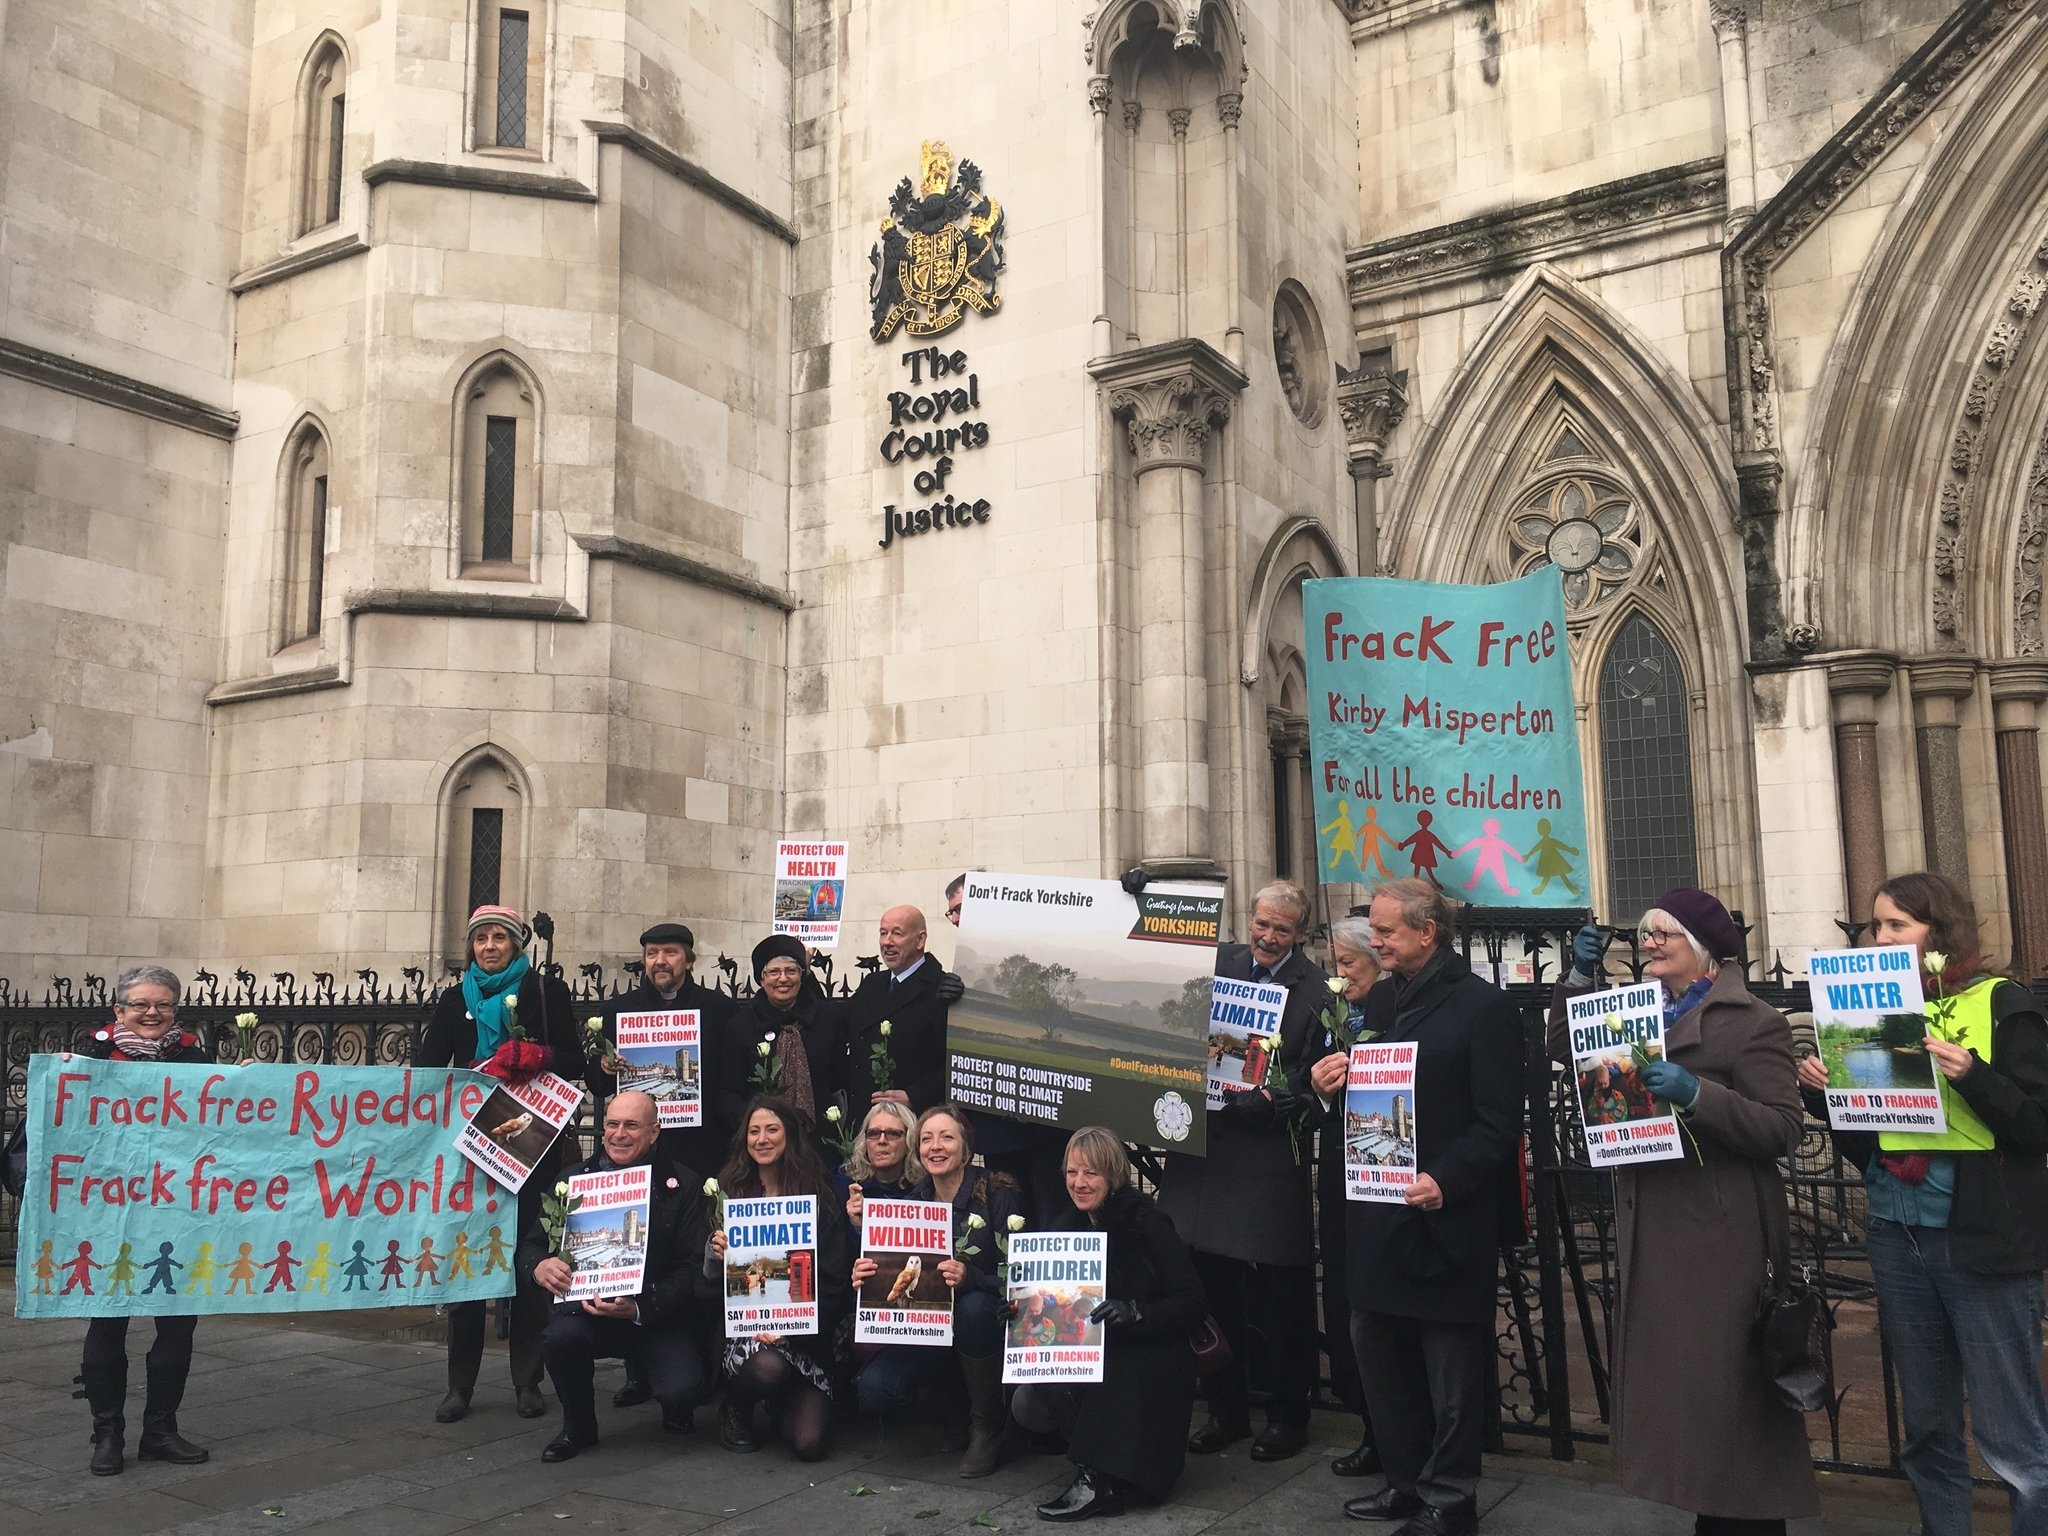 Residents of Kirby Misperton in Ryedale, North Yorkshire, join anti-fracking campaigners outside the Royal Courts of Justice in London. Picture from FoE.